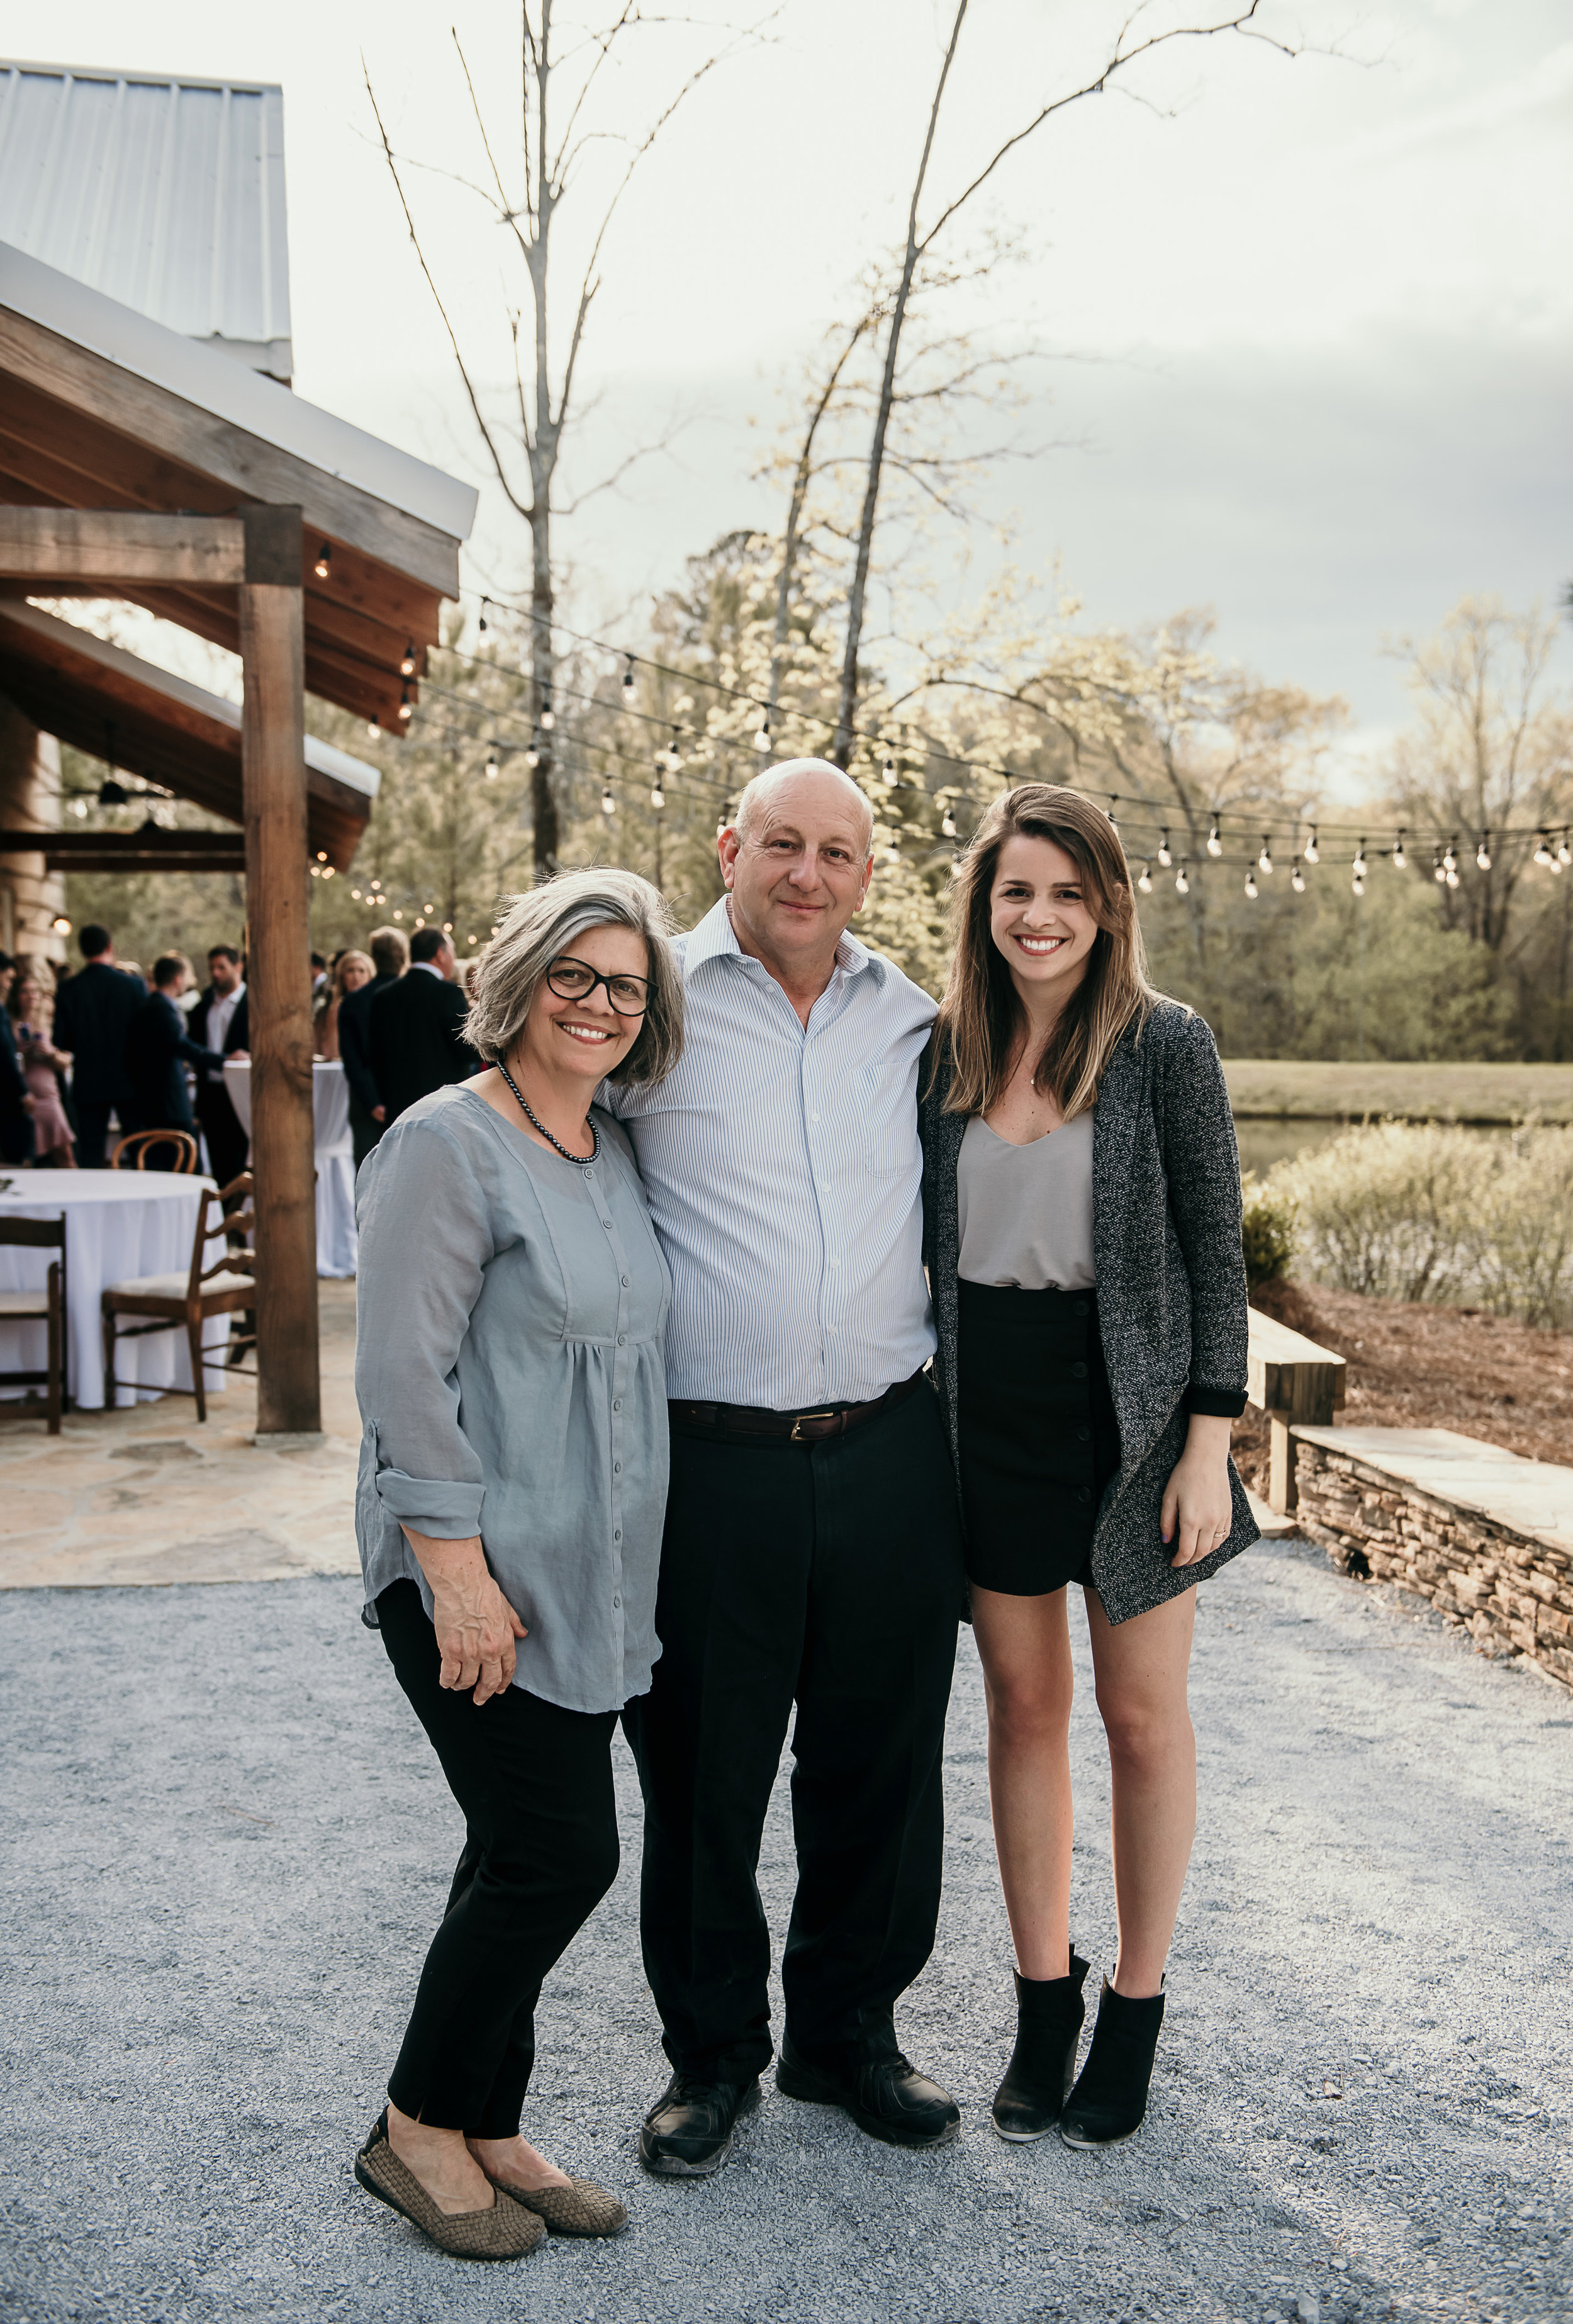 The Owners of Belle Farm! Photographer:  Flatwoods Photography